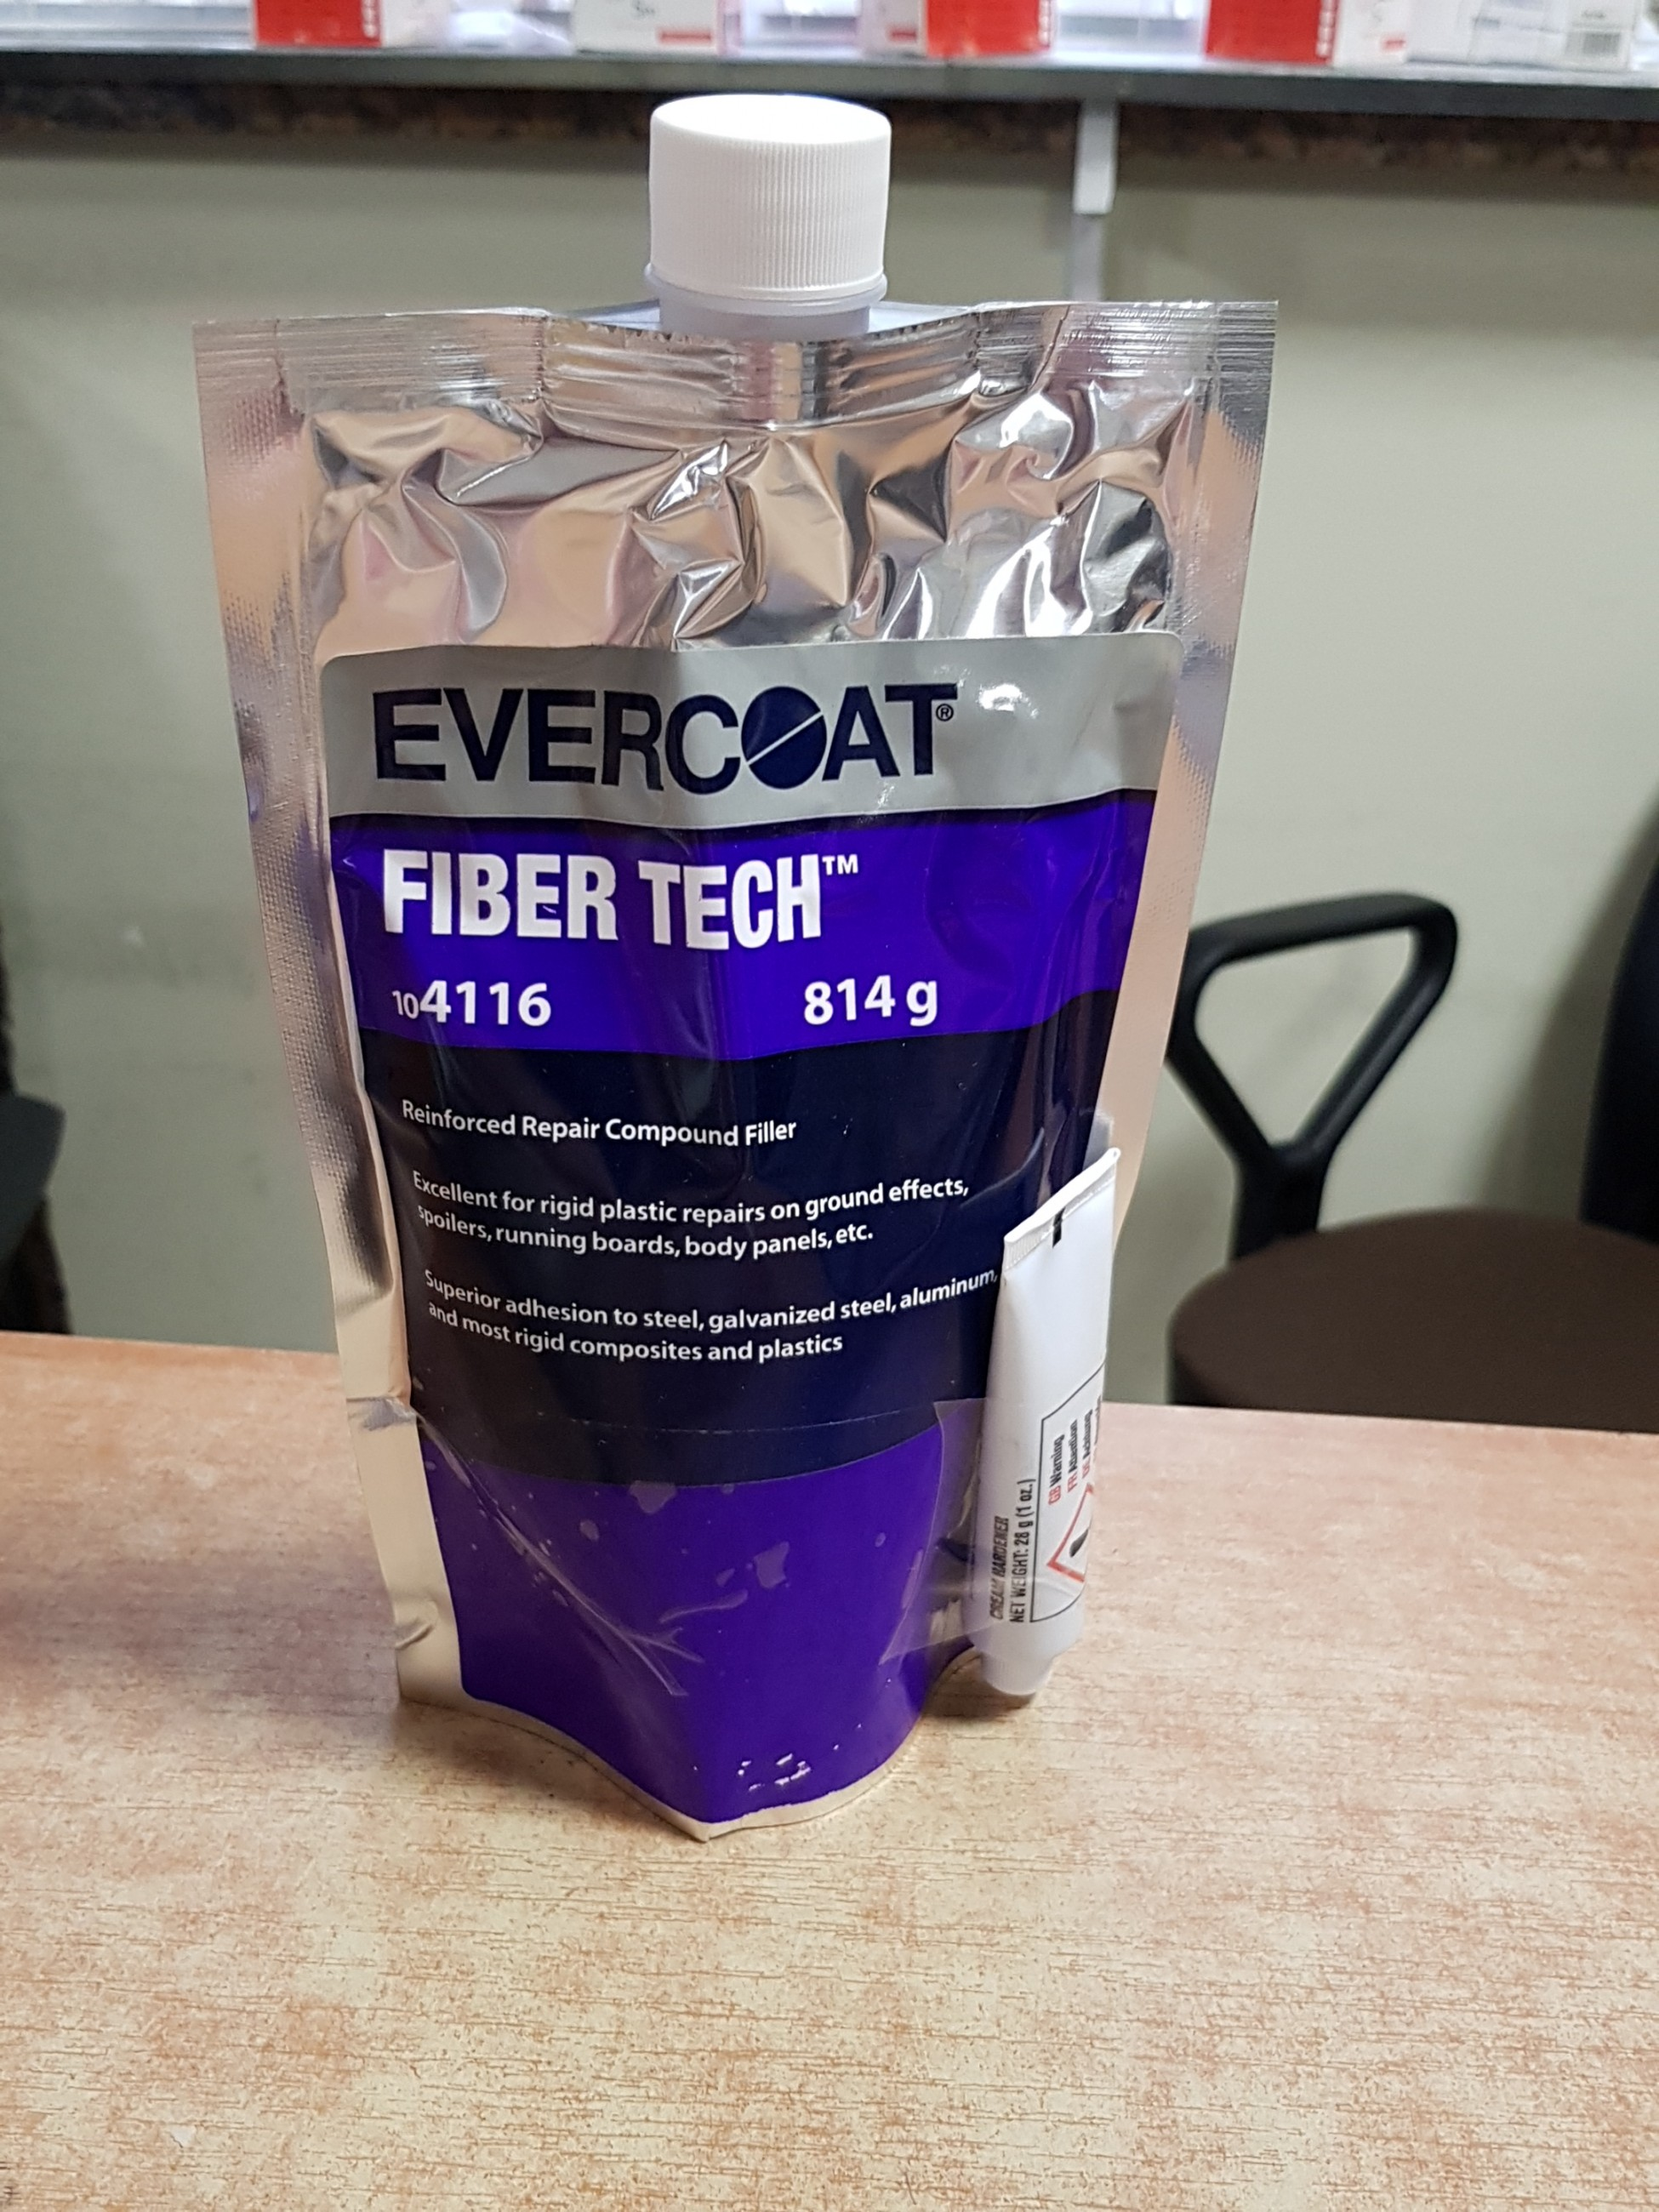 Evercoat Fiber Tech